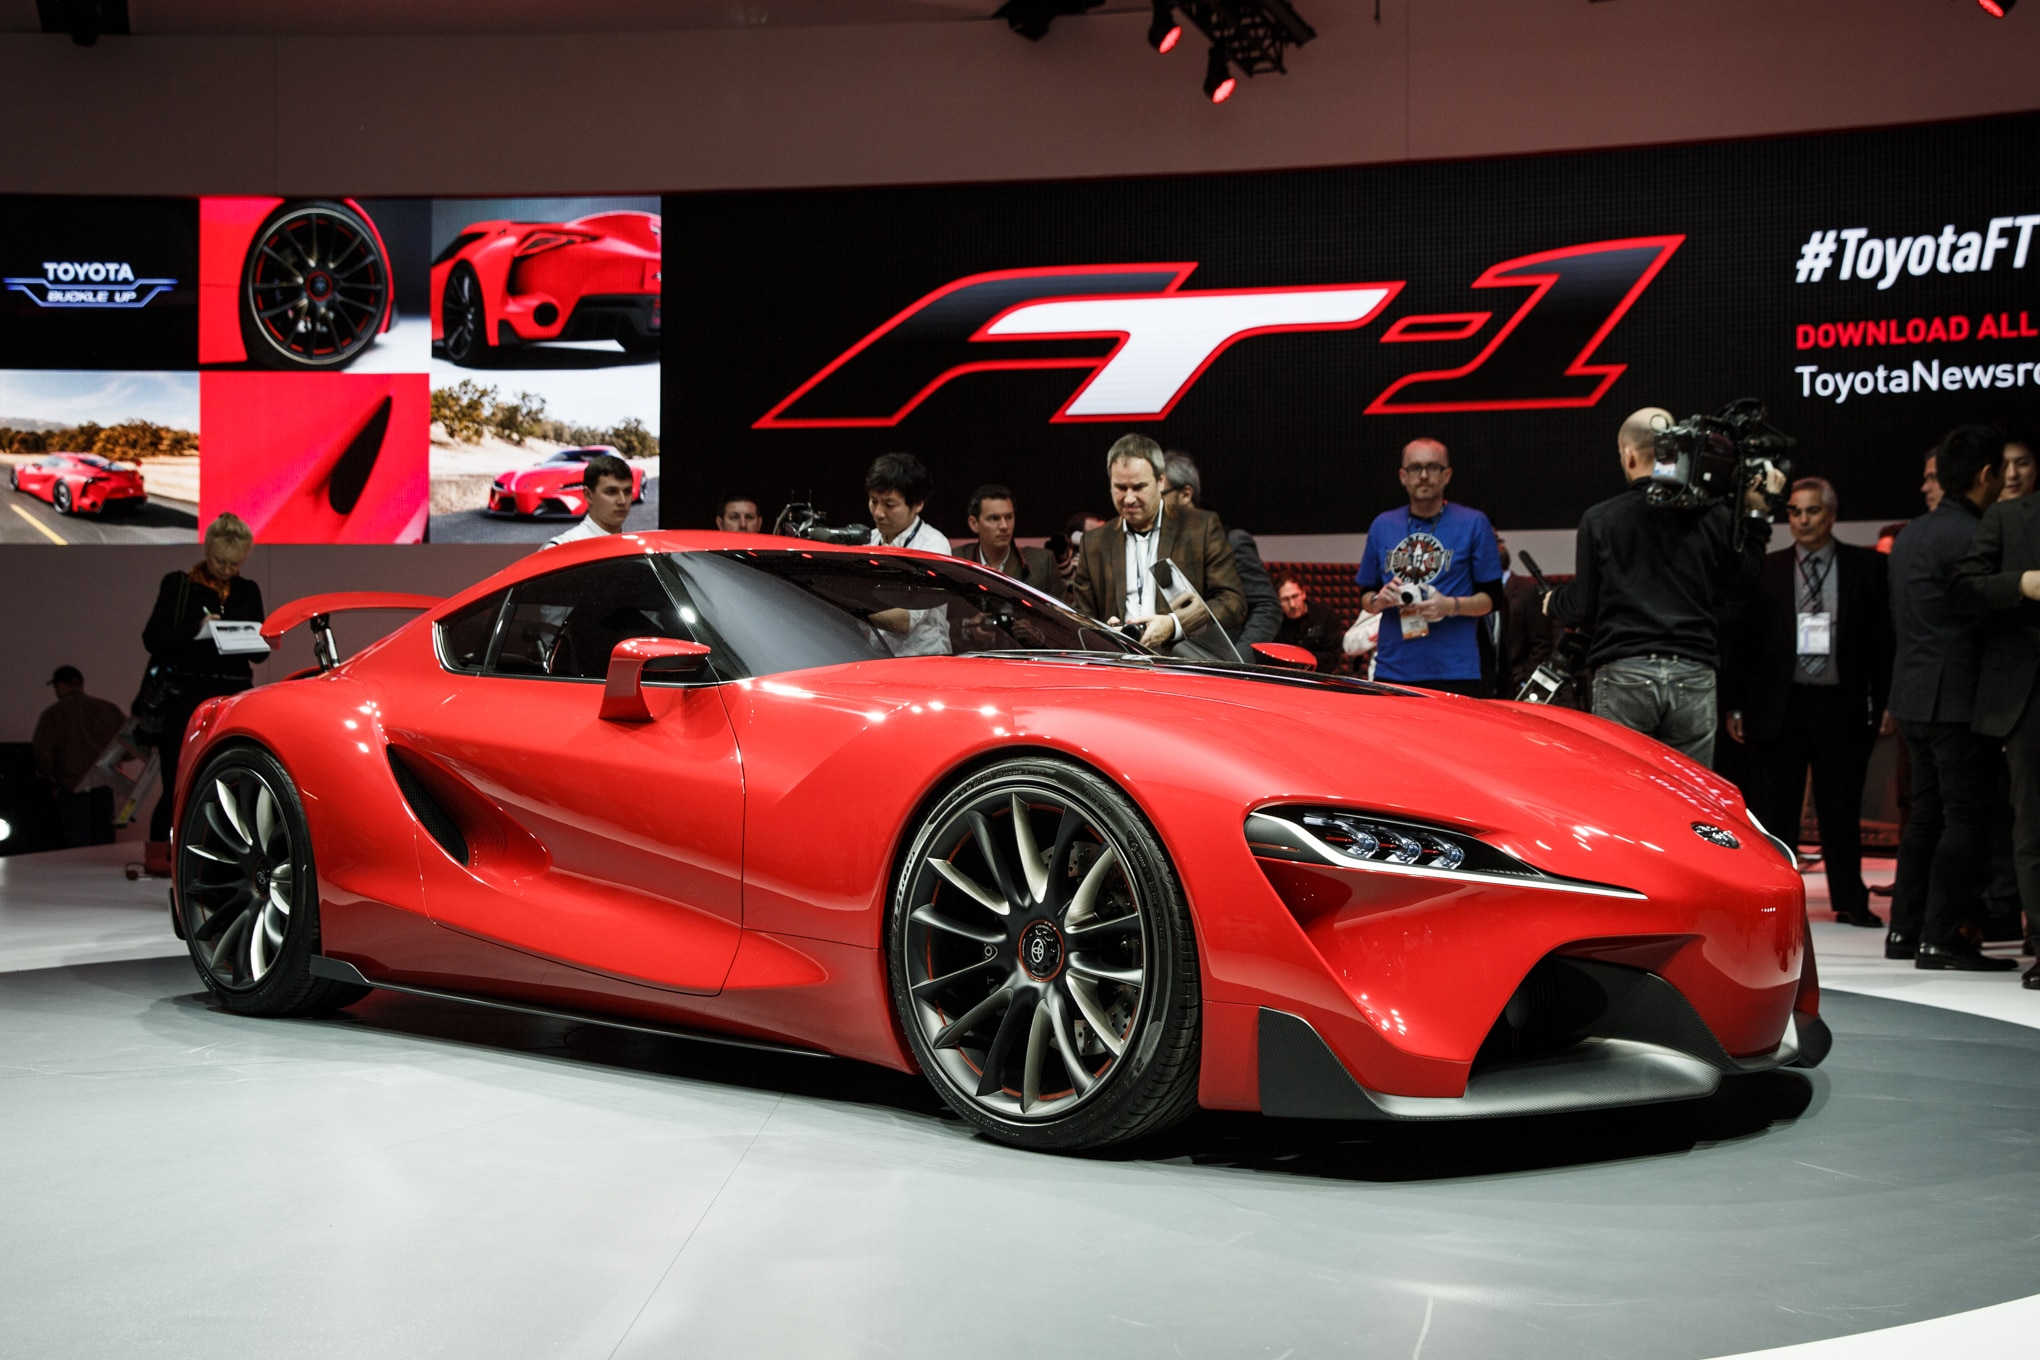 Toyota Ft 1 >> Detroit 2014 Toyota Ft 1 Concept Stuns Previews Future Sports Car